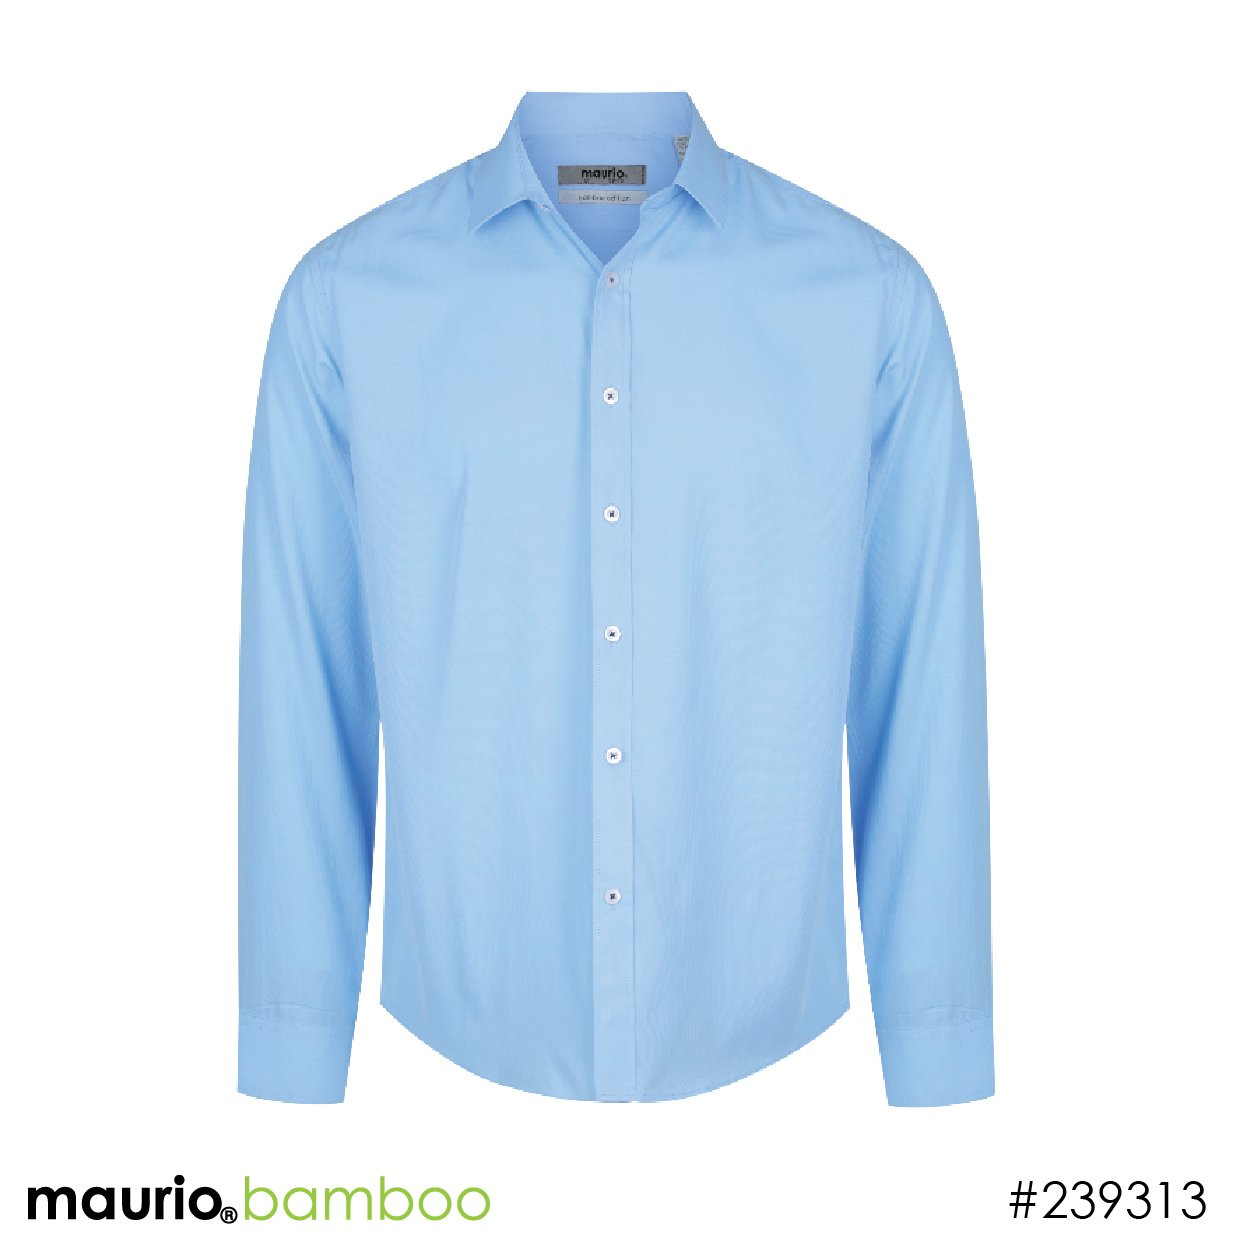 Dress shirt bamboo fabric - sky blue